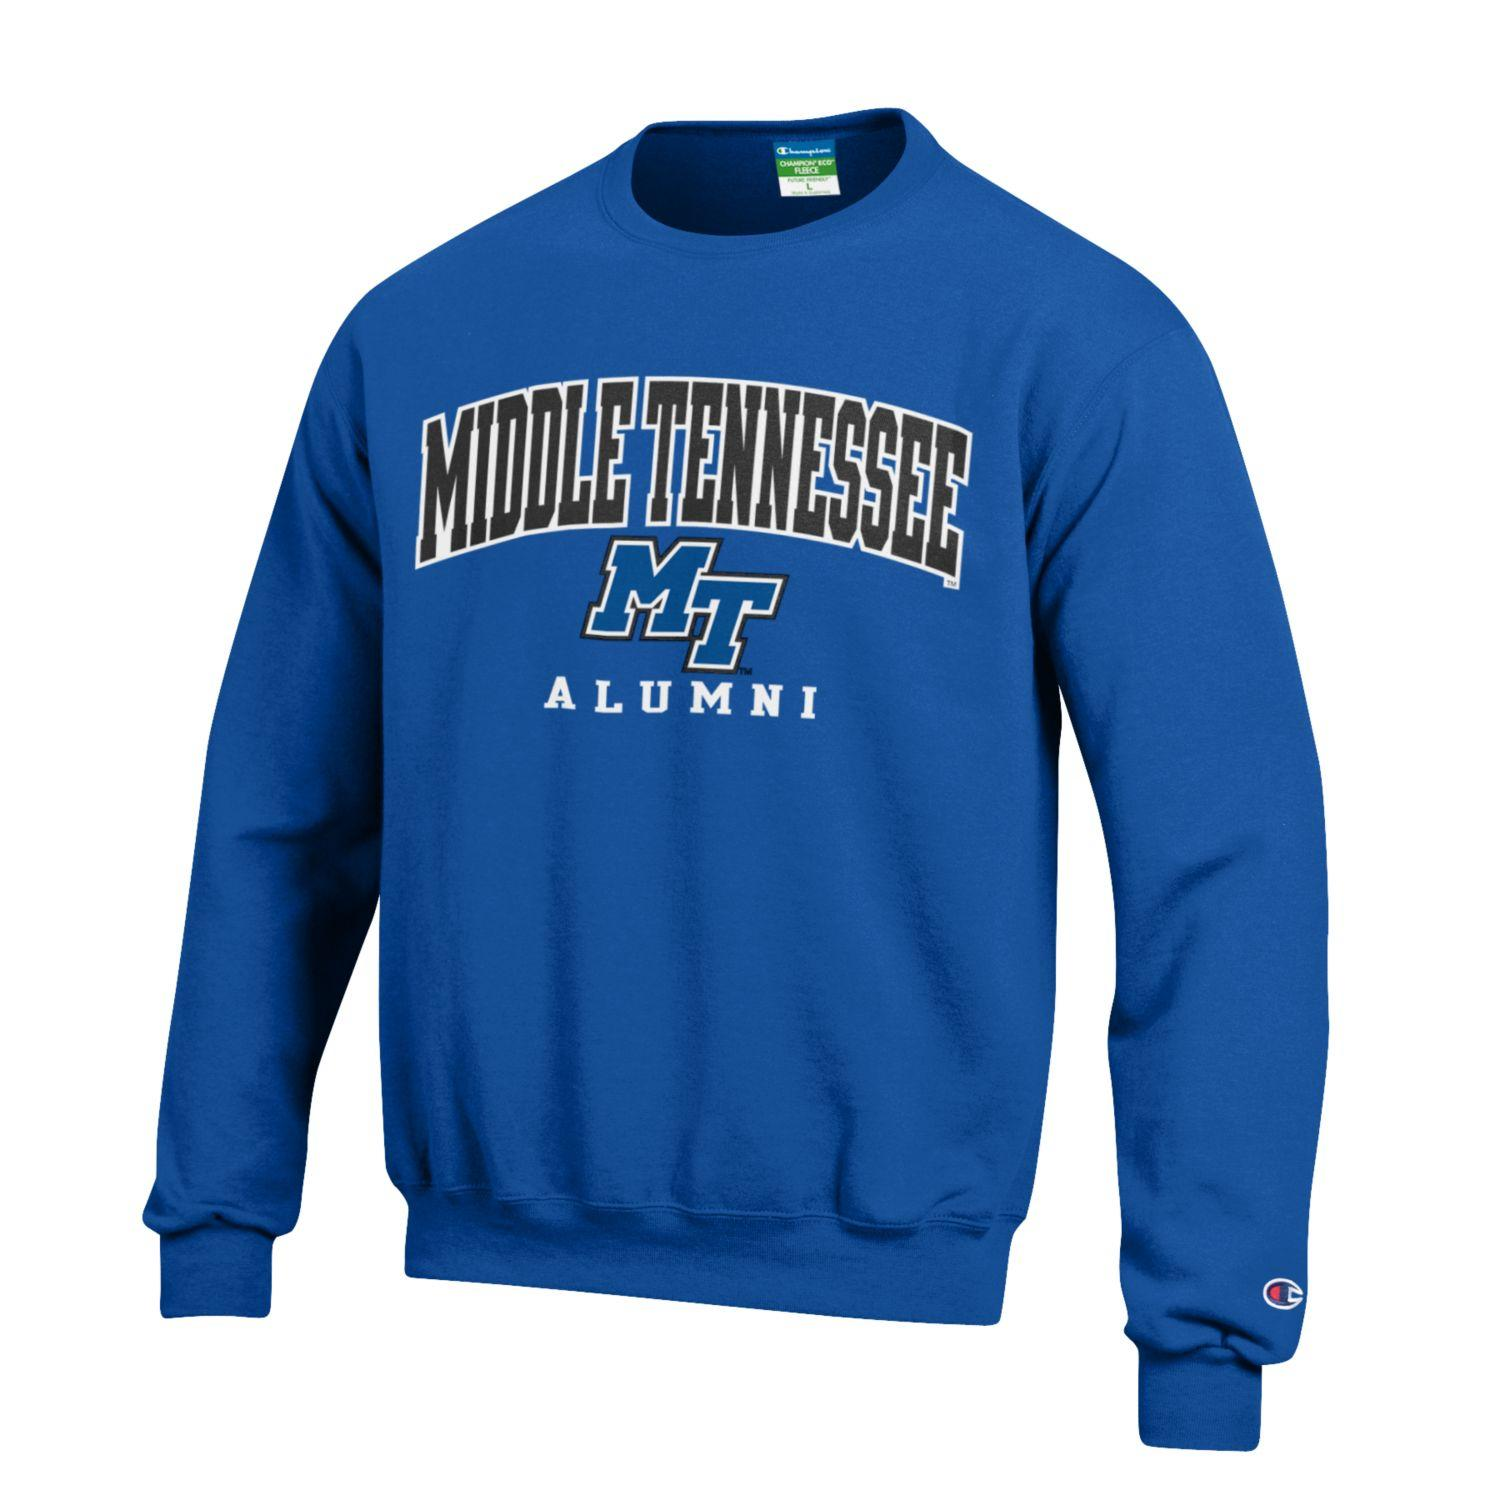 Middle Tennessee Alumni Tackle Twill Sweatshirt